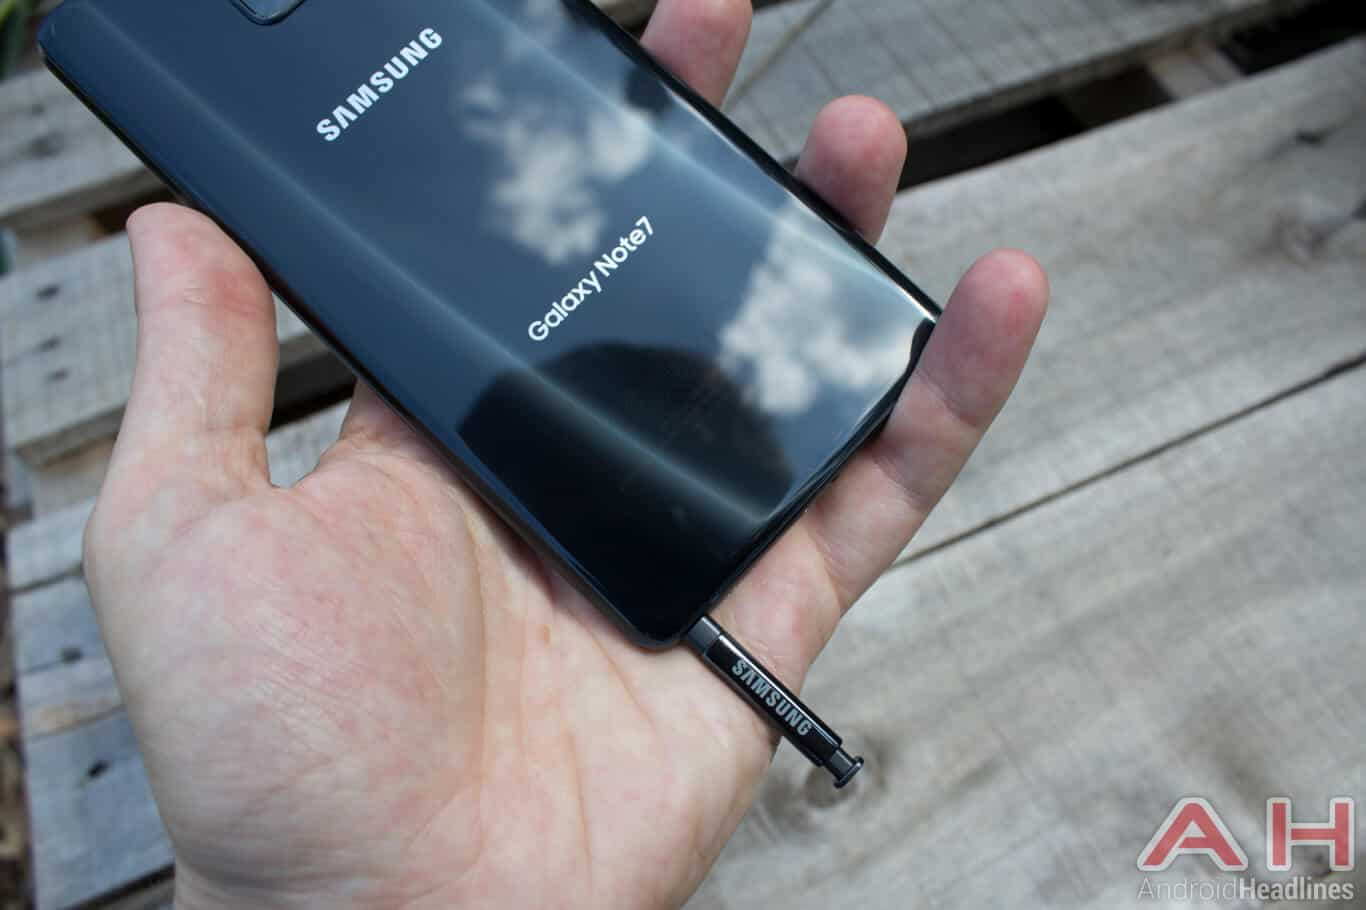 Samsung Galaxy Note 7 AH NS 02 s pen